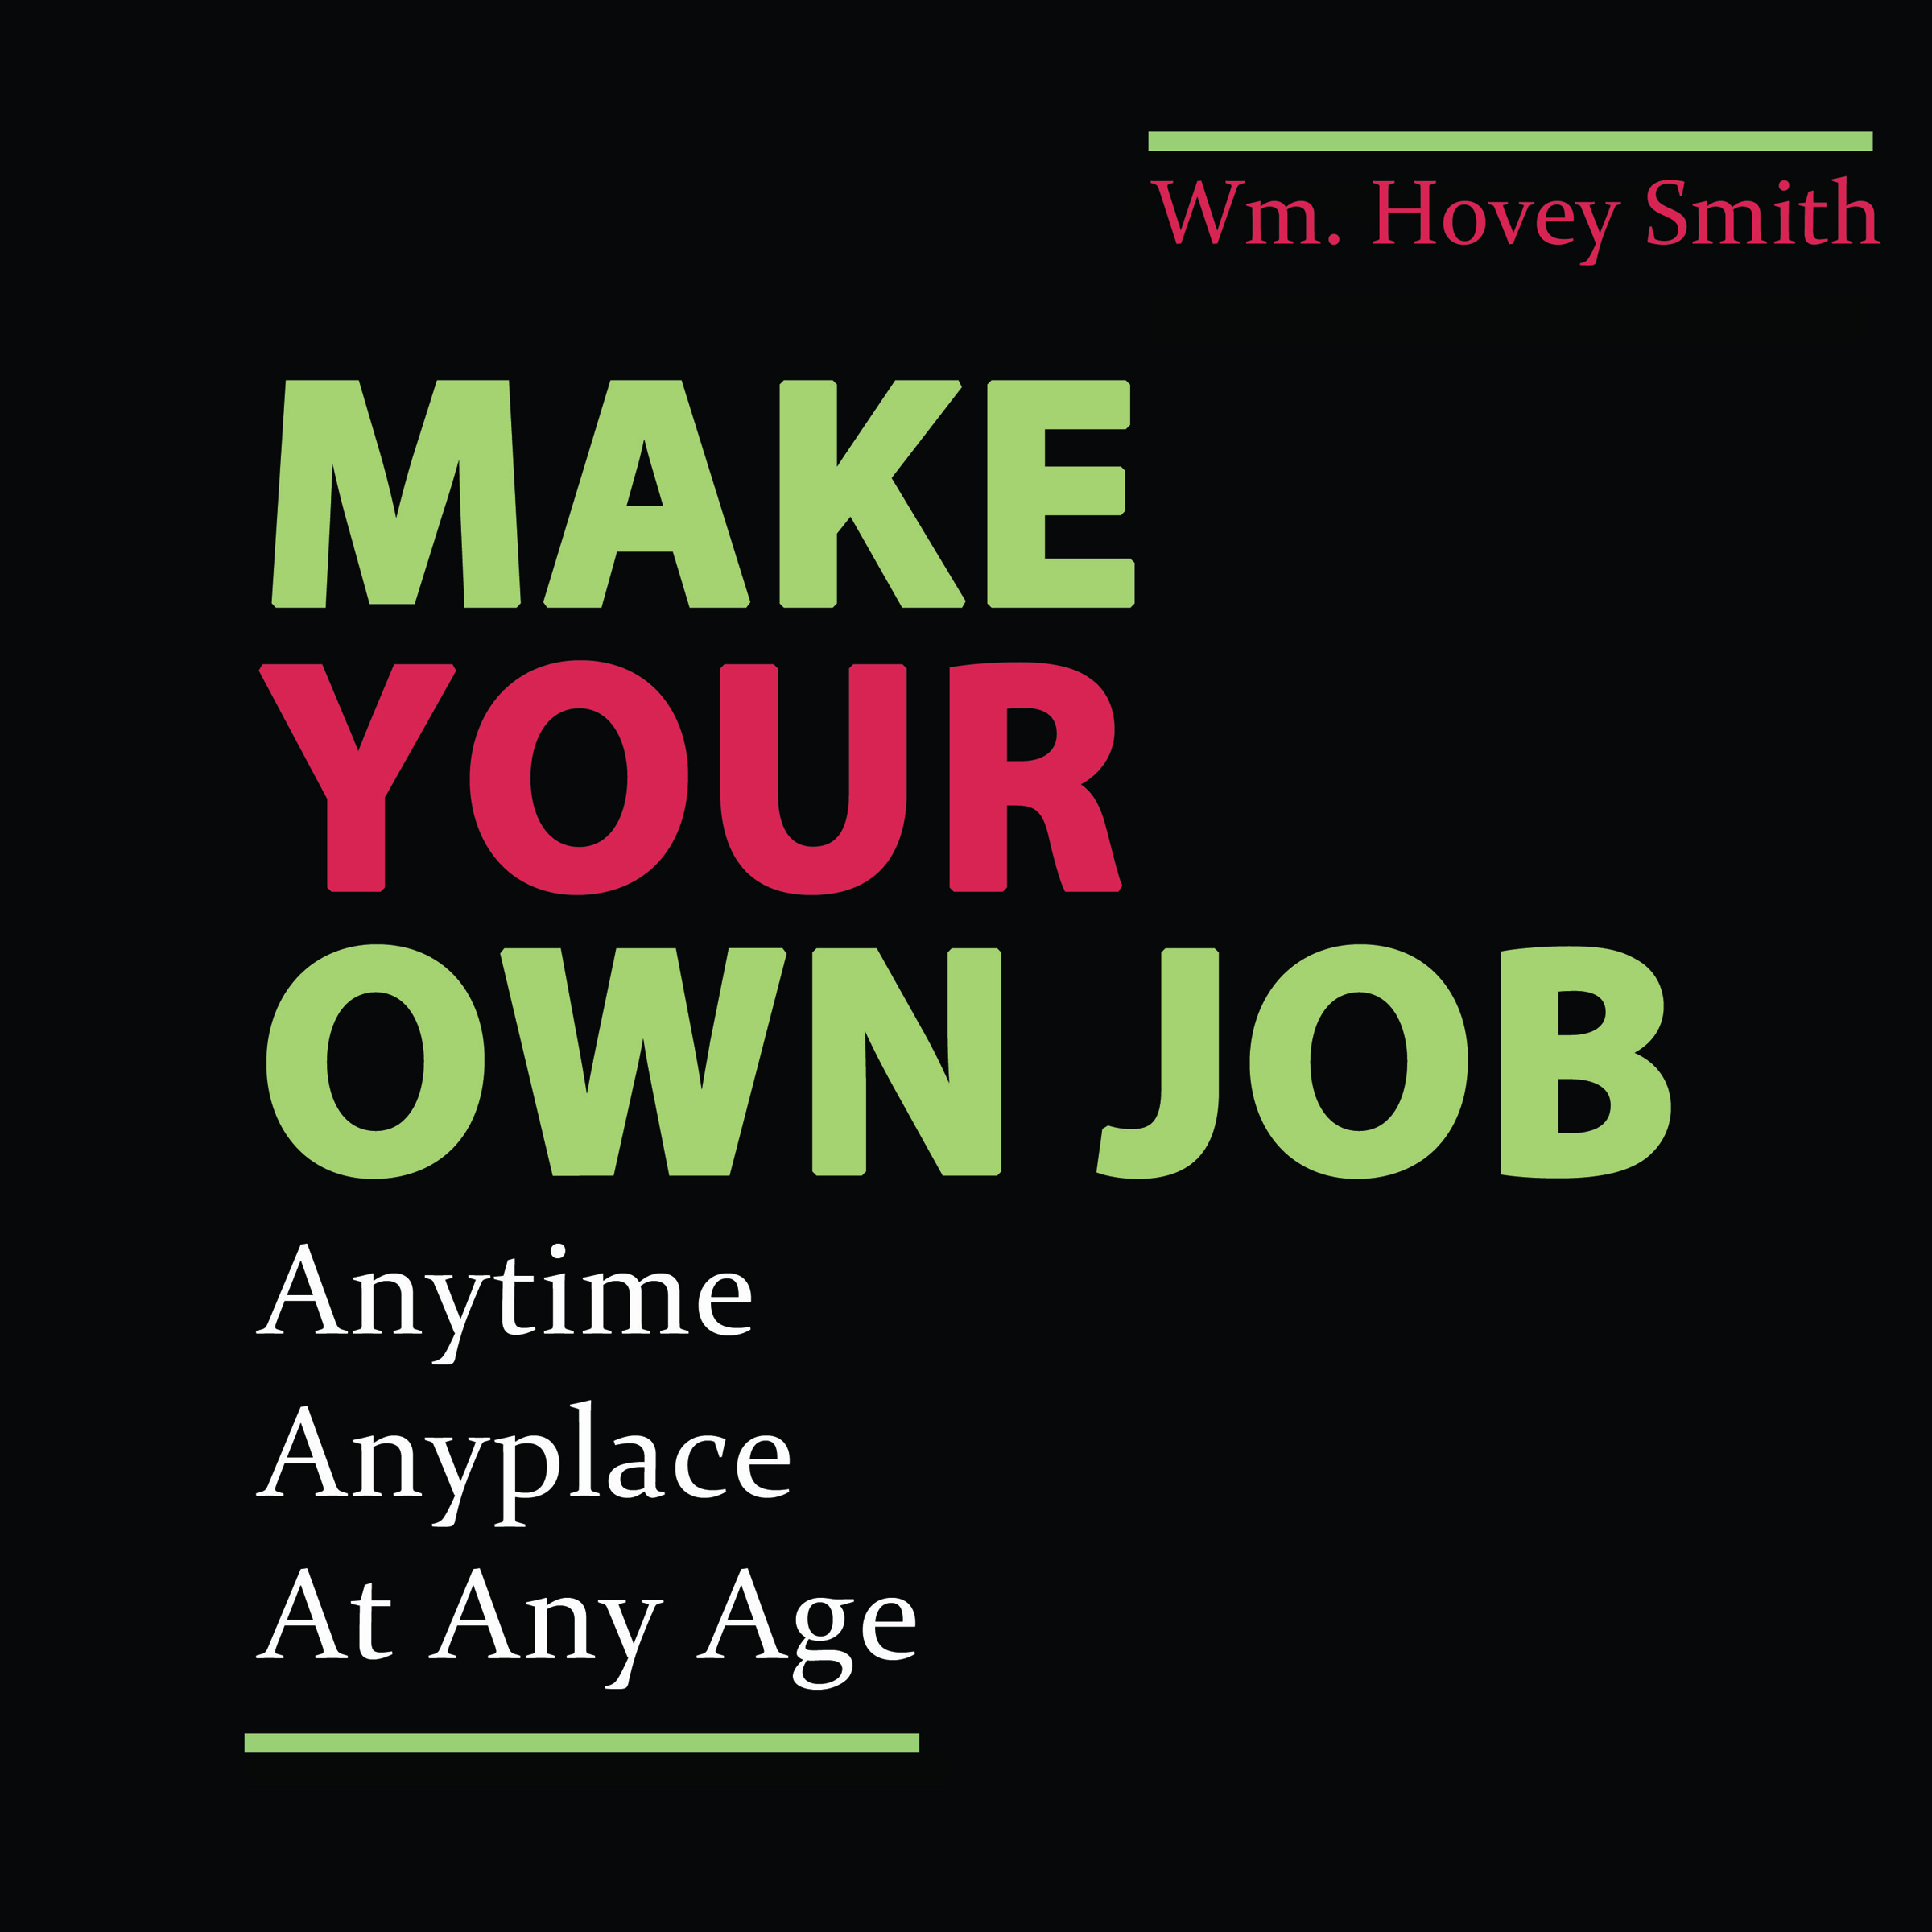 Make Your Own Job cover image